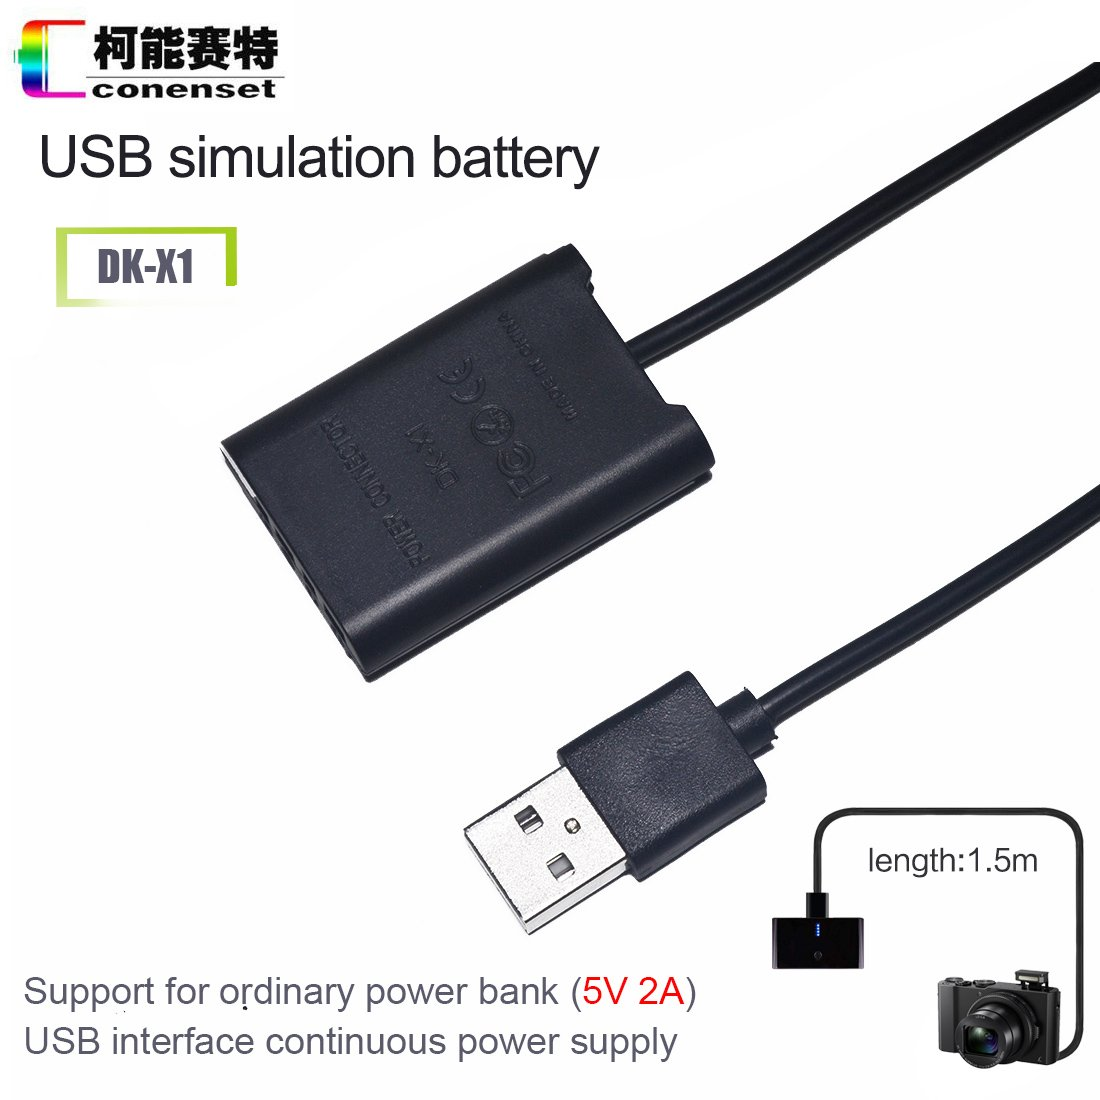 Np Bx1 Dummy Battery Dk X1 Dc Coupler Plus A Usb Cable Power Injector For External Hard Drivesusb Sony Cybershot Rx100 M2 M3 M4 Rx1 Rx1r Ii Iii Iv Digital Cameras Camera